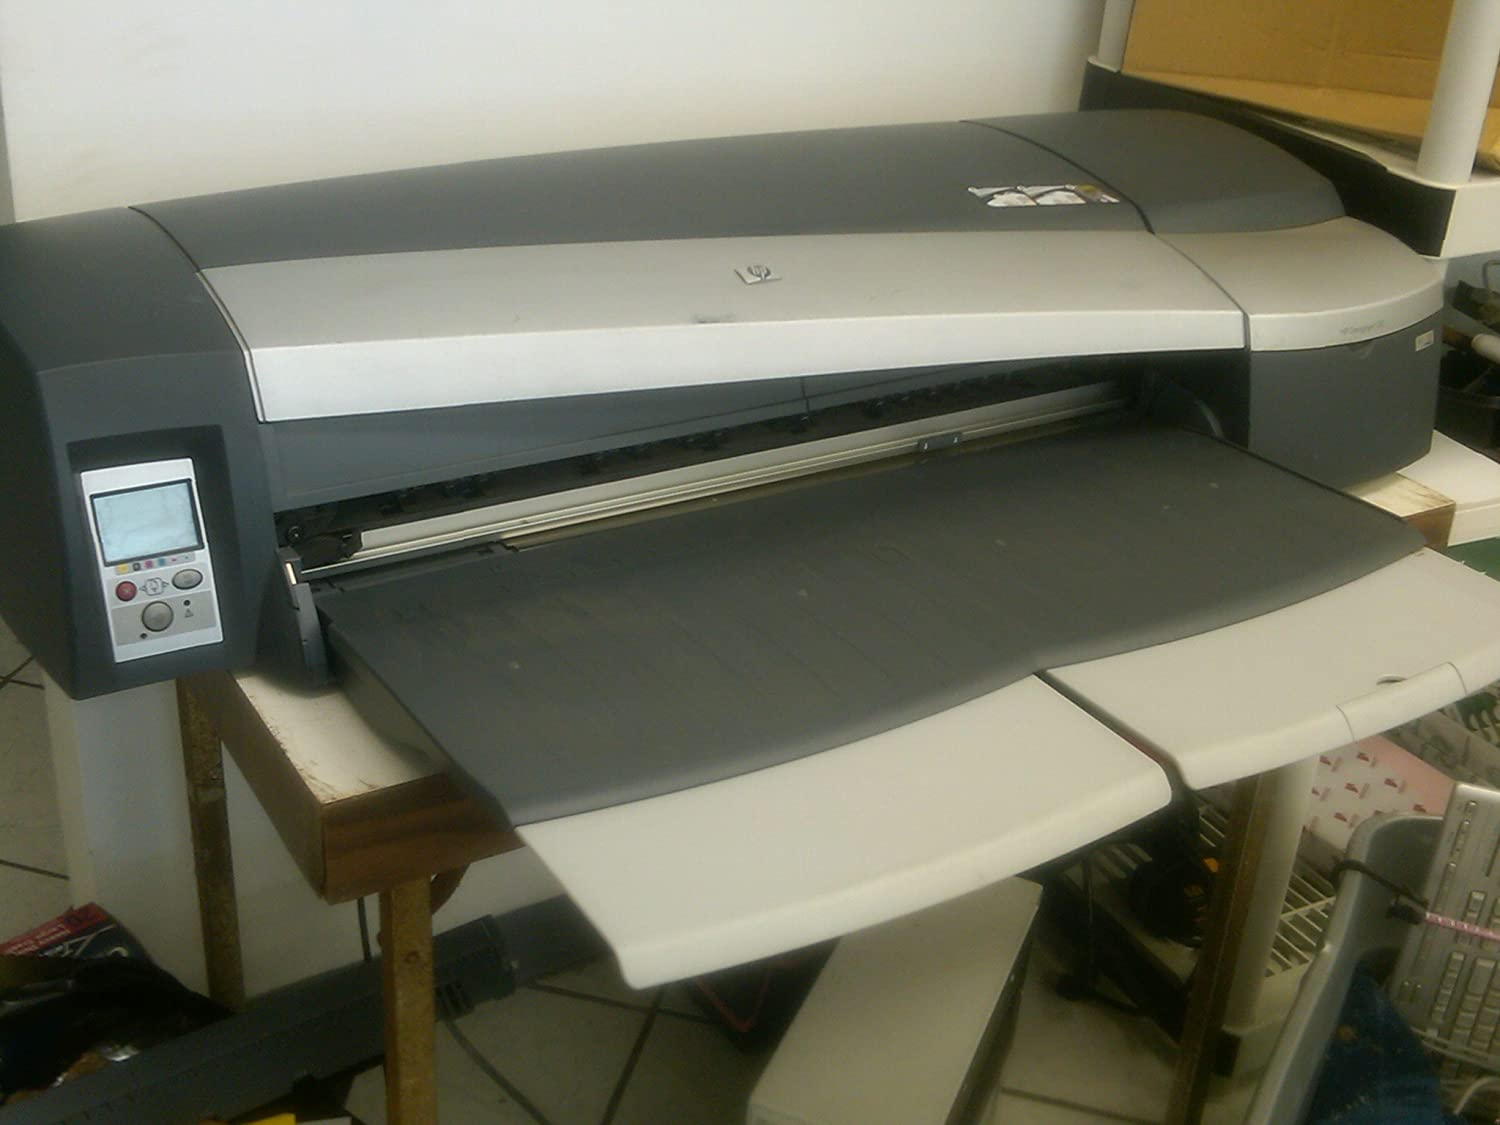 Amazon.com: HP Designjet 130r Color Inkjet Printer: Electronics